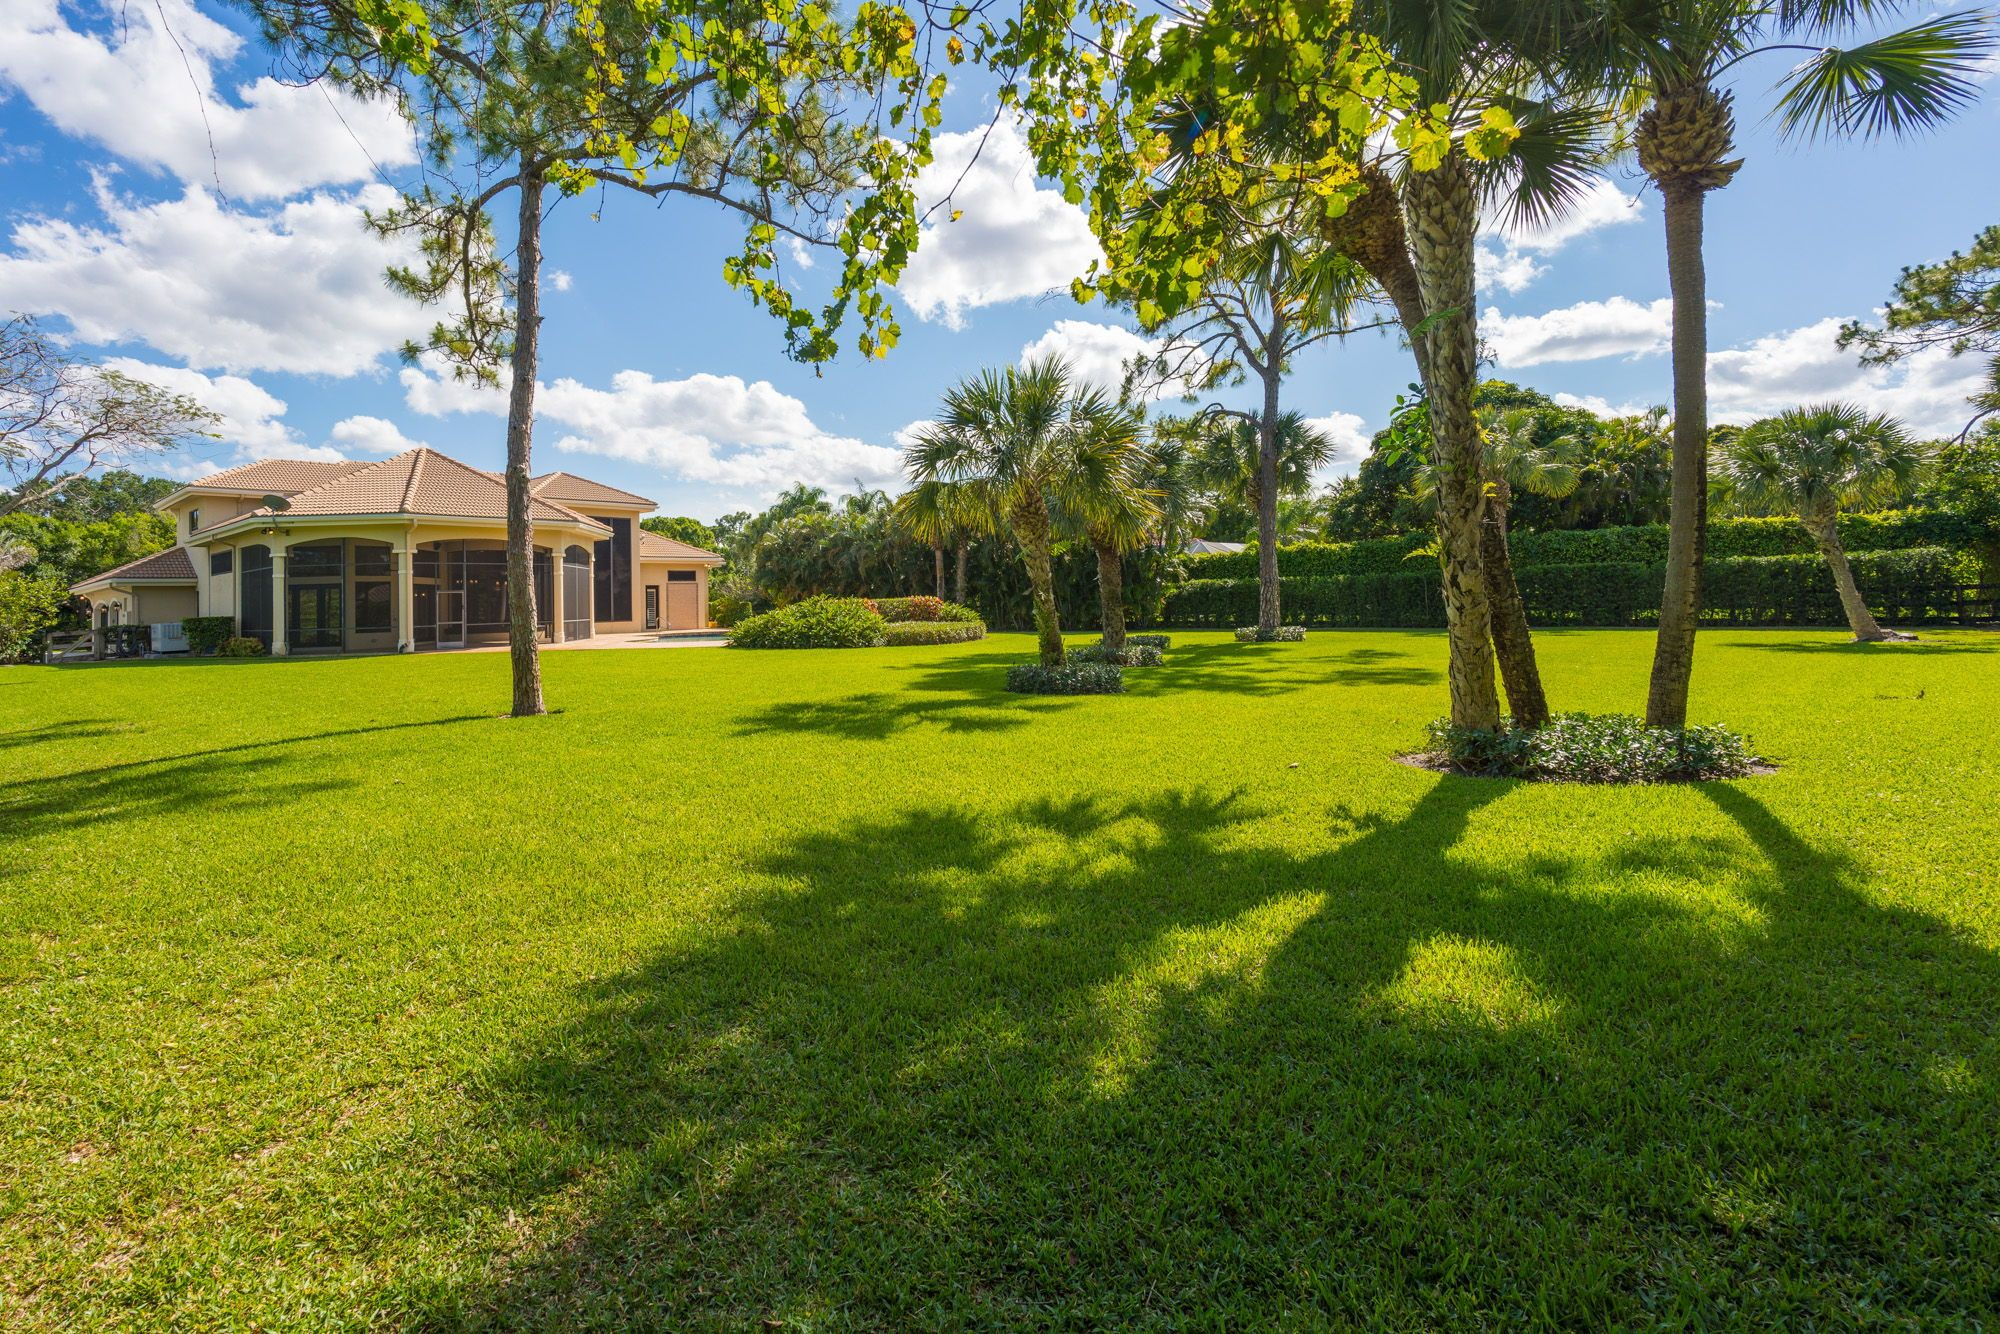 This Extraordinary Expansive 5br 4 Ba Estate Home With A Pool Sits On One Of The Most Esteemed Streets Of With Images Palm Beach Gardens Screened In Patio Estate Homes